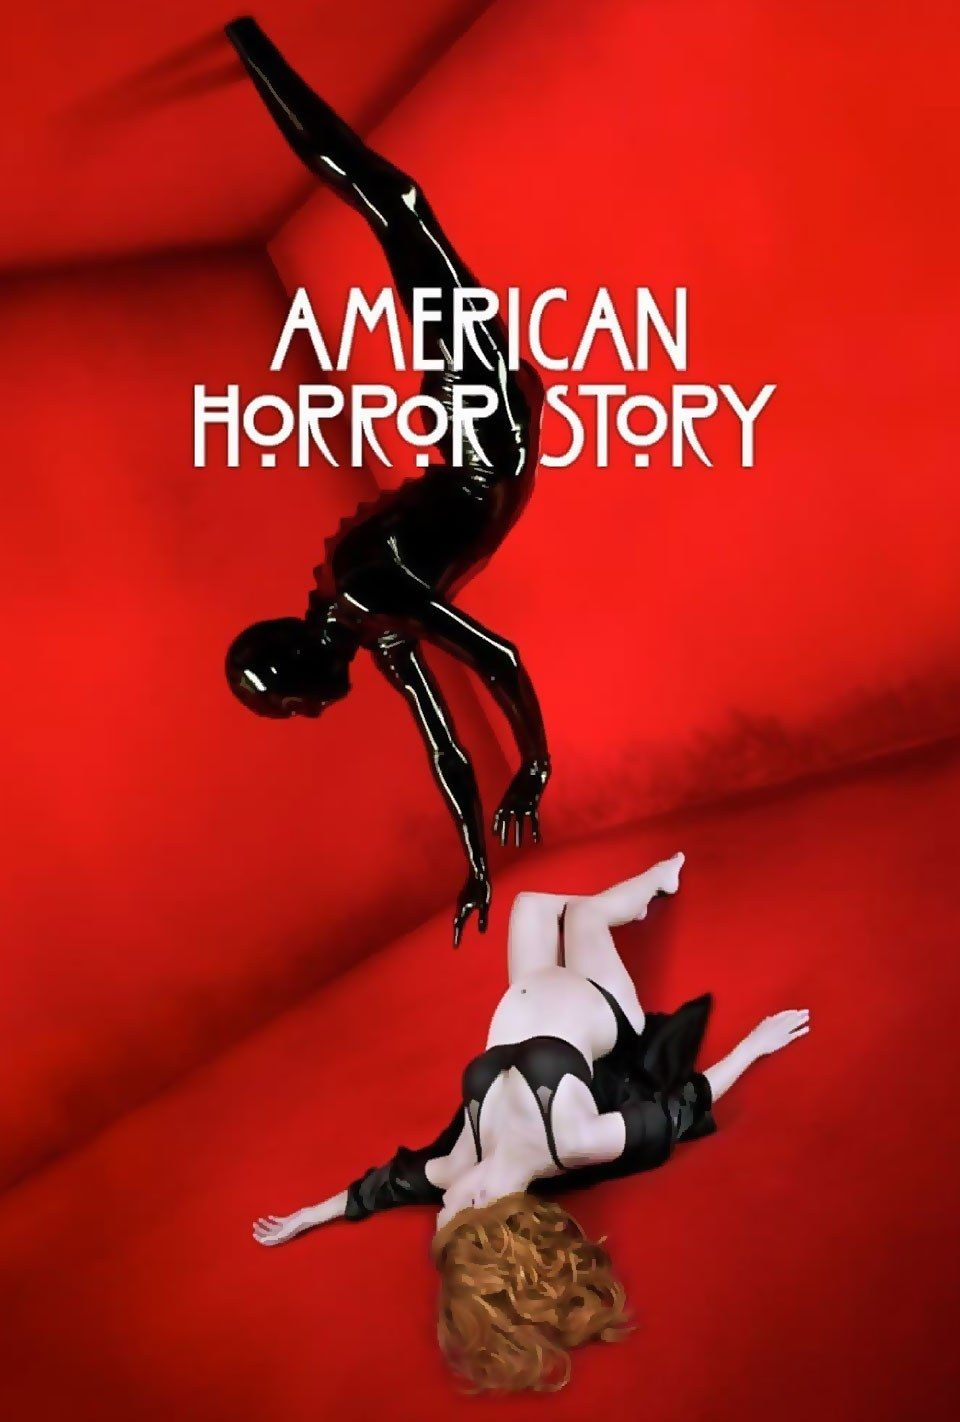 Read the American Horror Story: 101: Pilot (2011) script